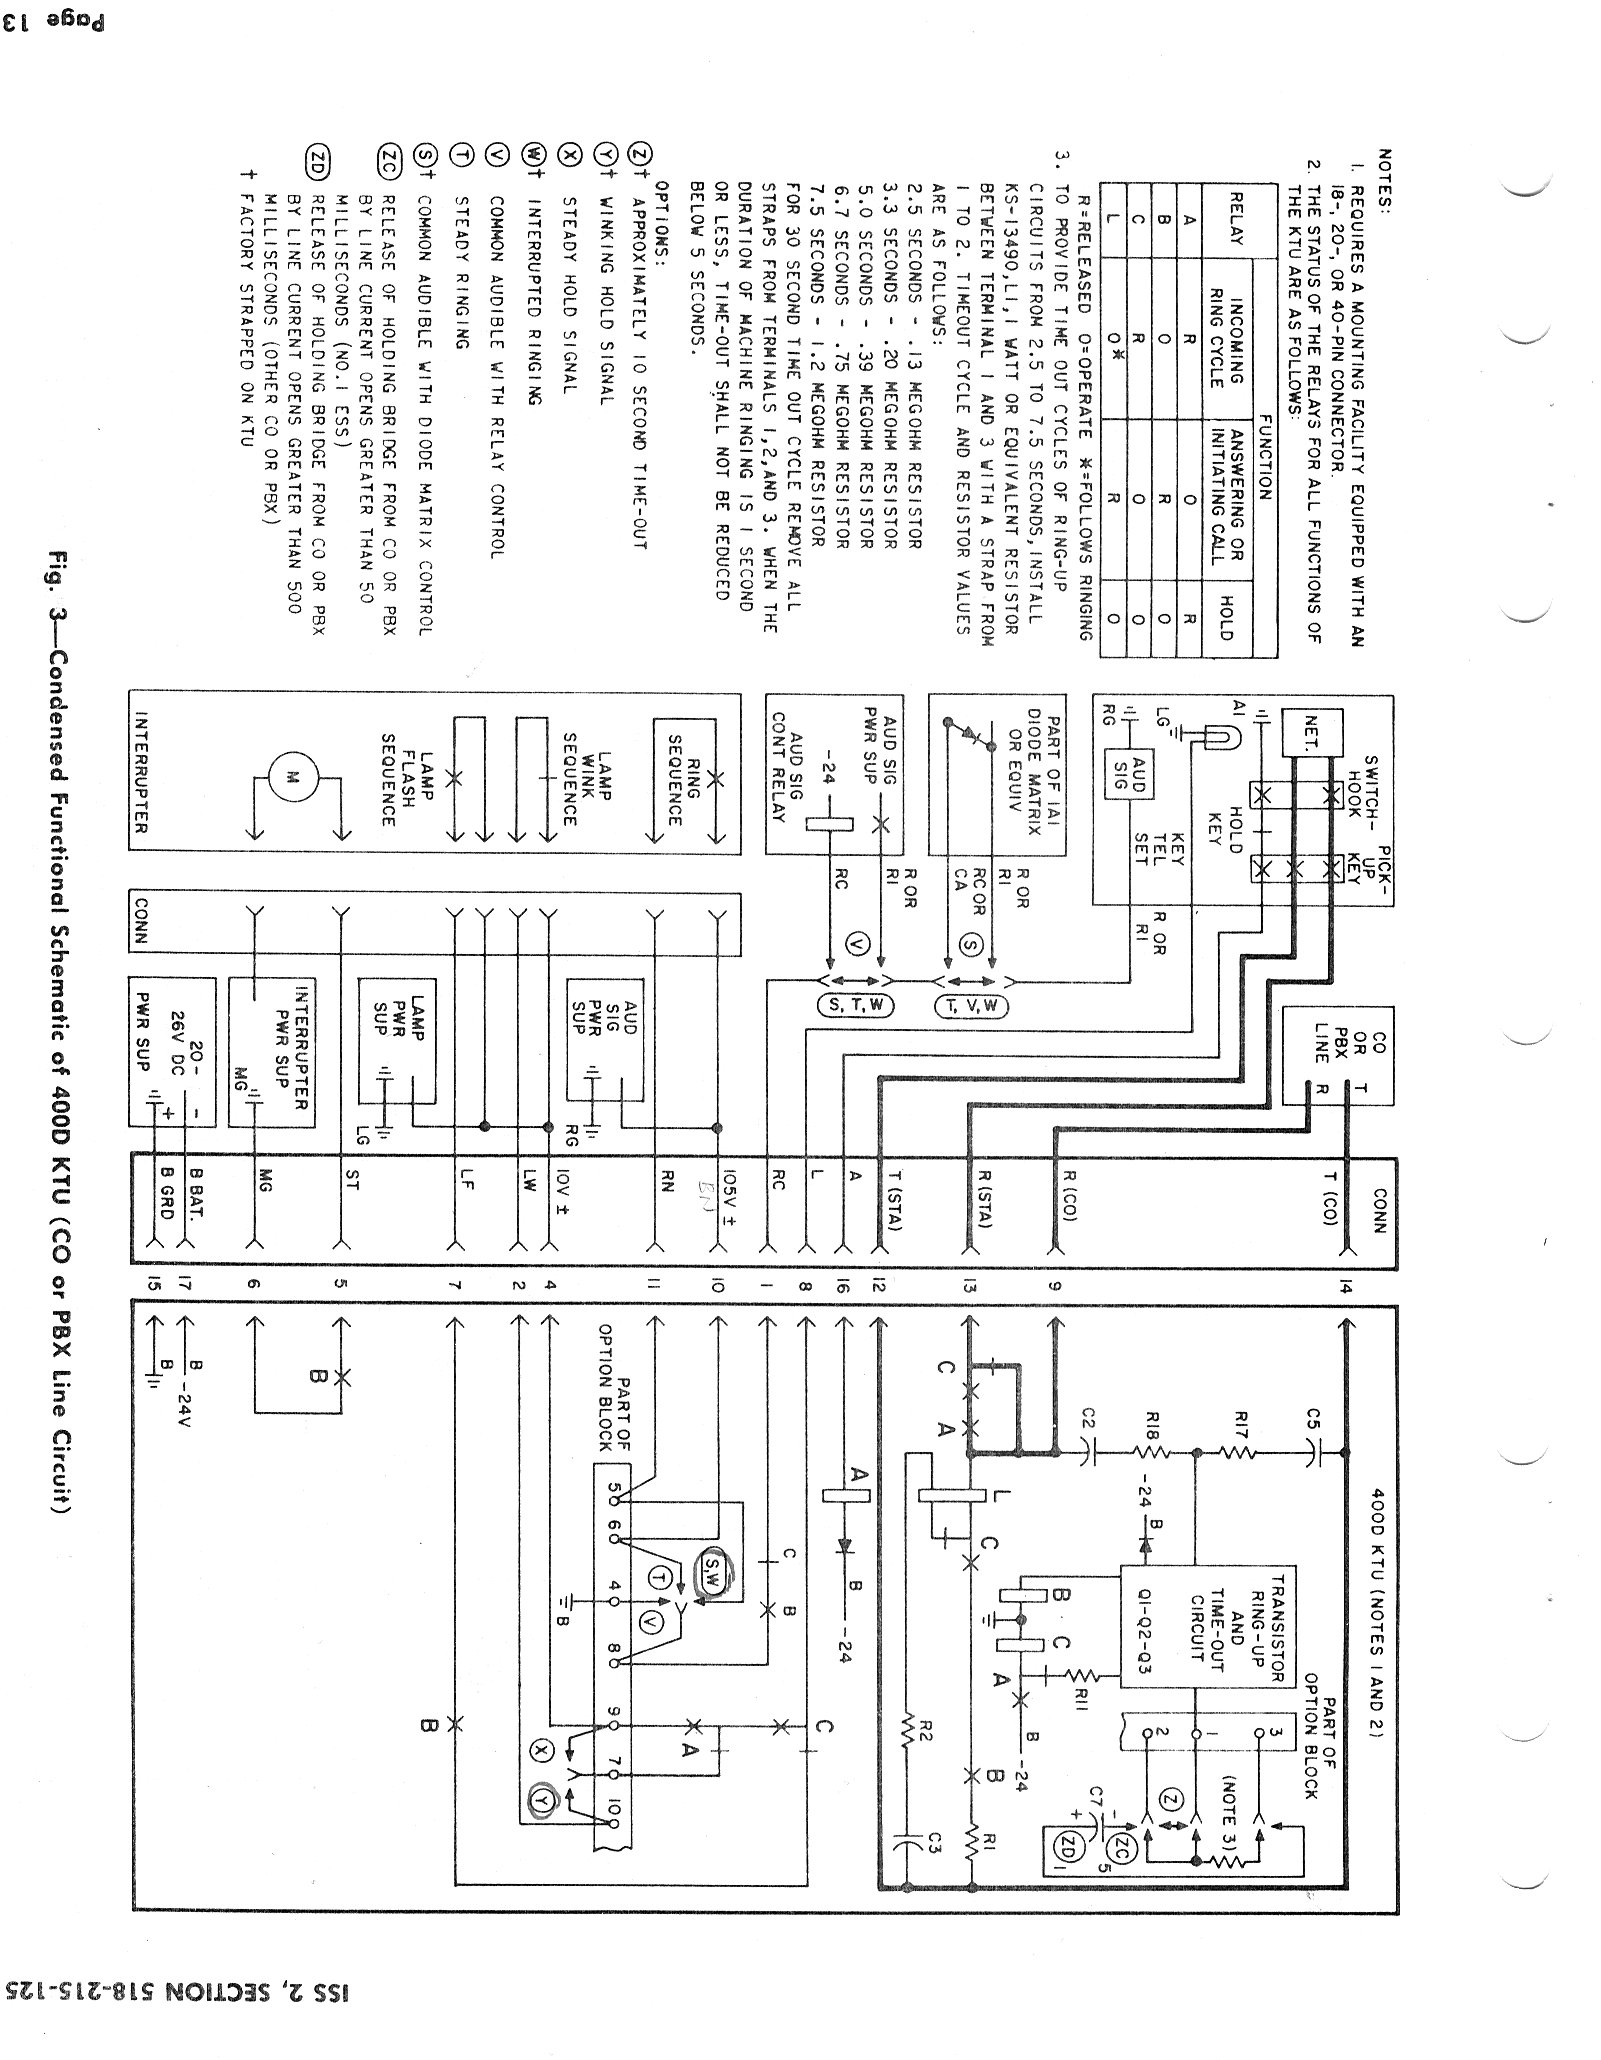 400d telephone technical references multi-line phone wiring diagram at crackthecode.co